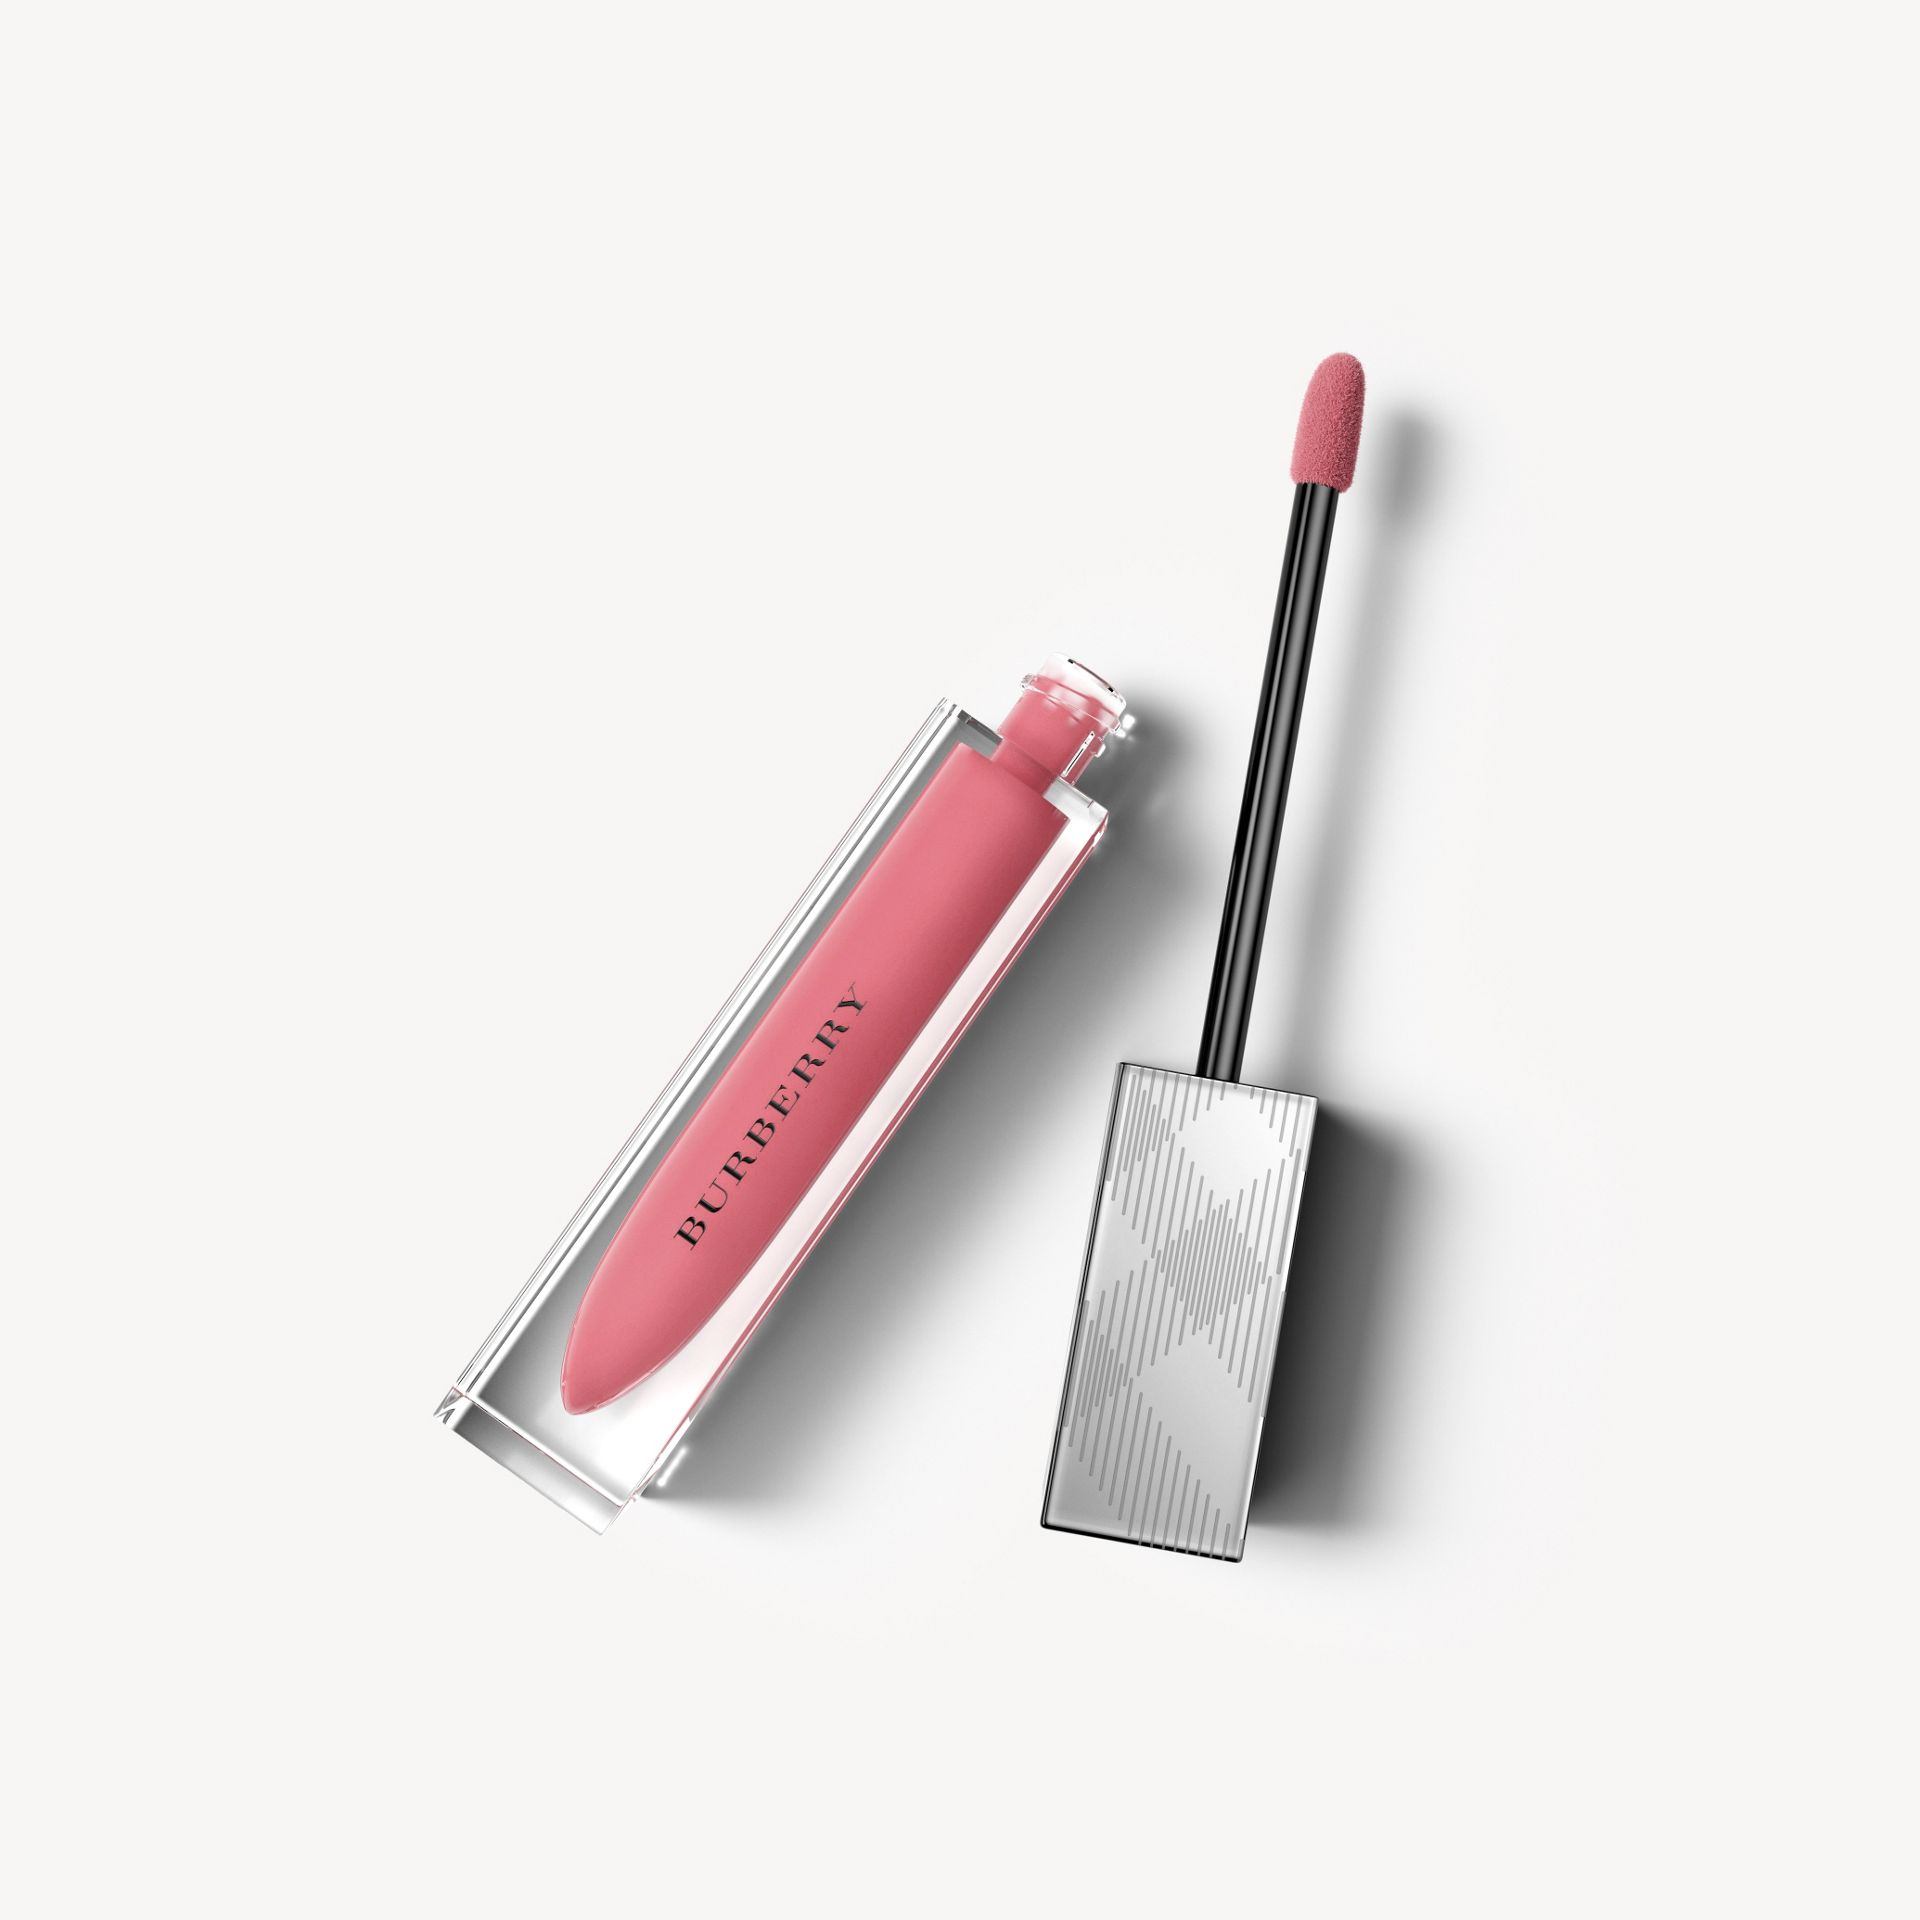 Brilho labial Burberry Kisses Gloss - Rose Blush No.89 - galeria de imagens 1